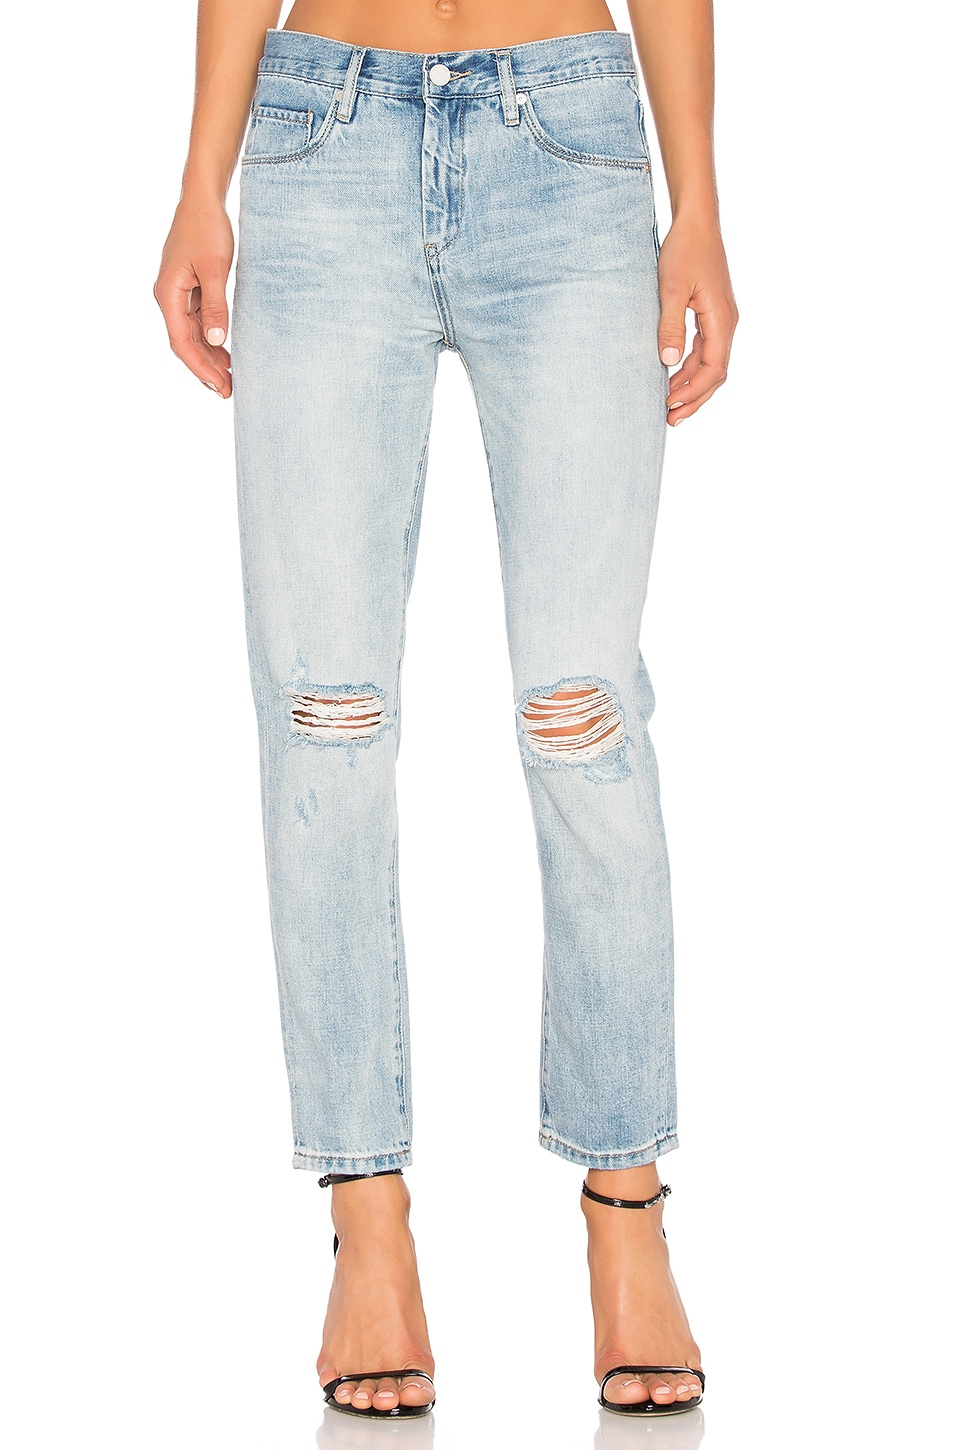 BLANKNYC Distressed Skinny in Personal Drainer